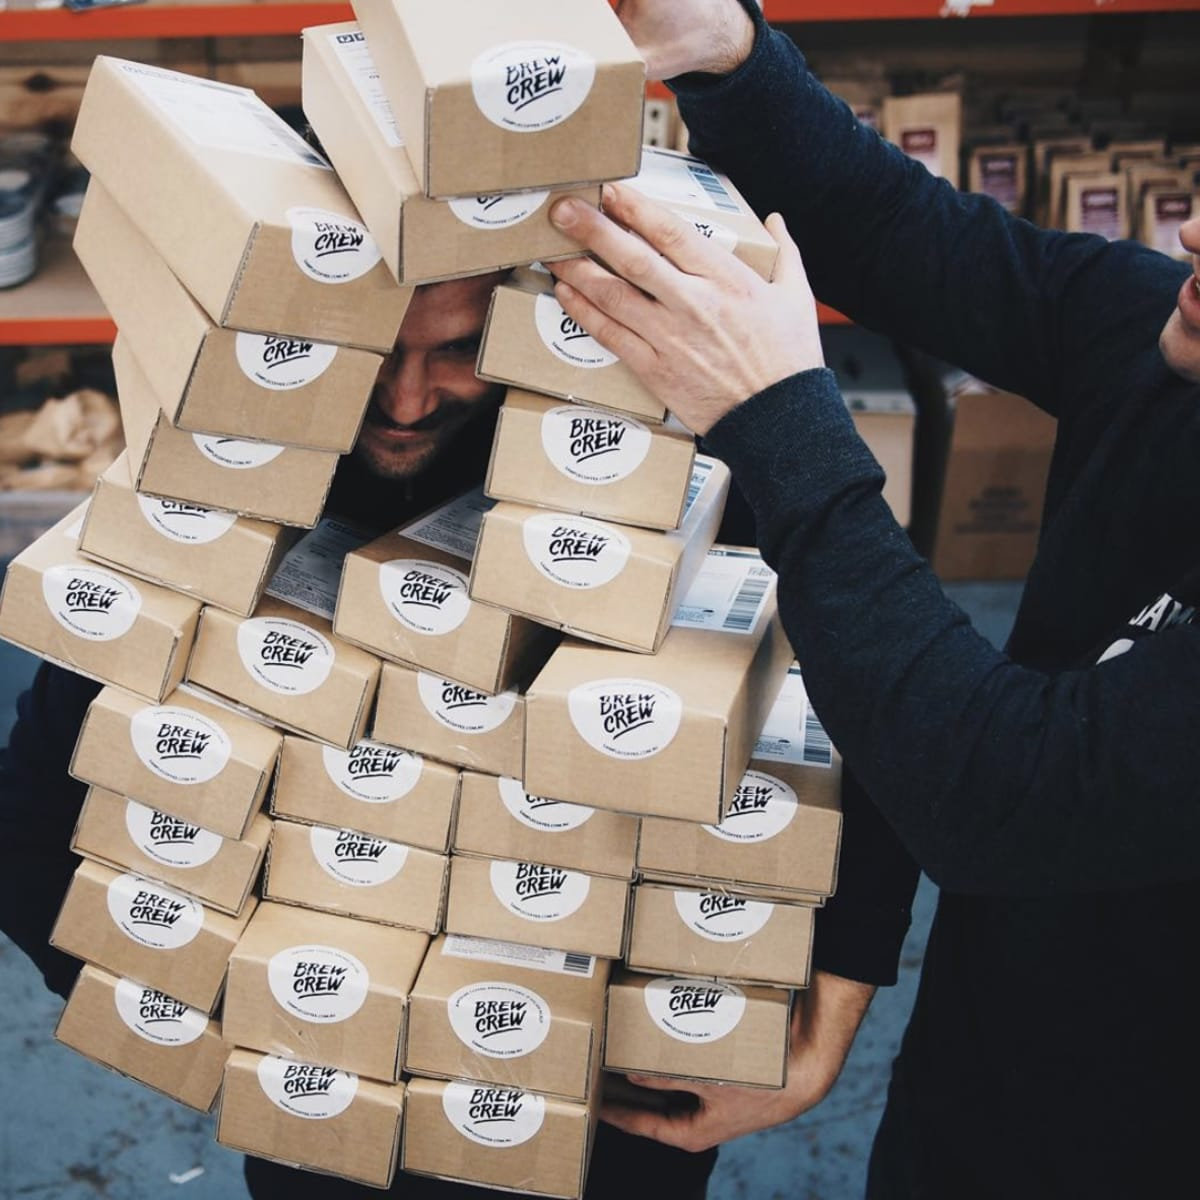 John full of coffee delivery boxes in our warehouse